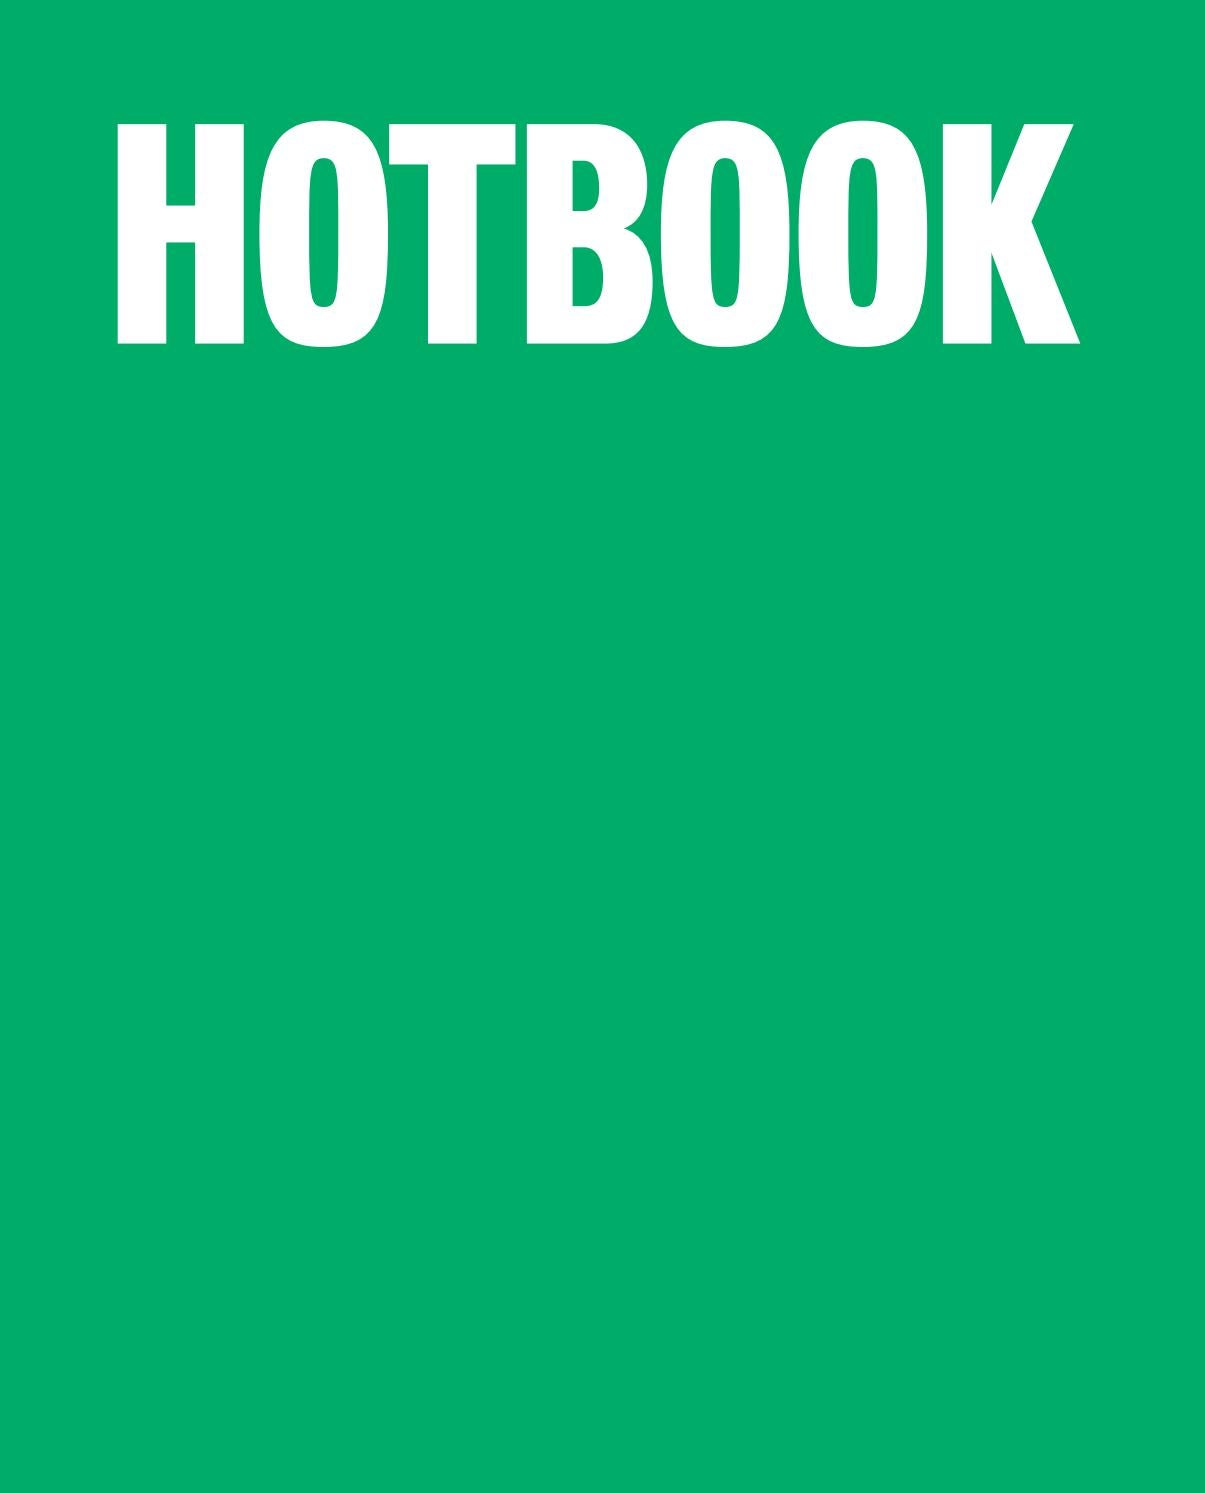 d515ee01e9 HOTBOOK 018 by HOTBOOK - issuu